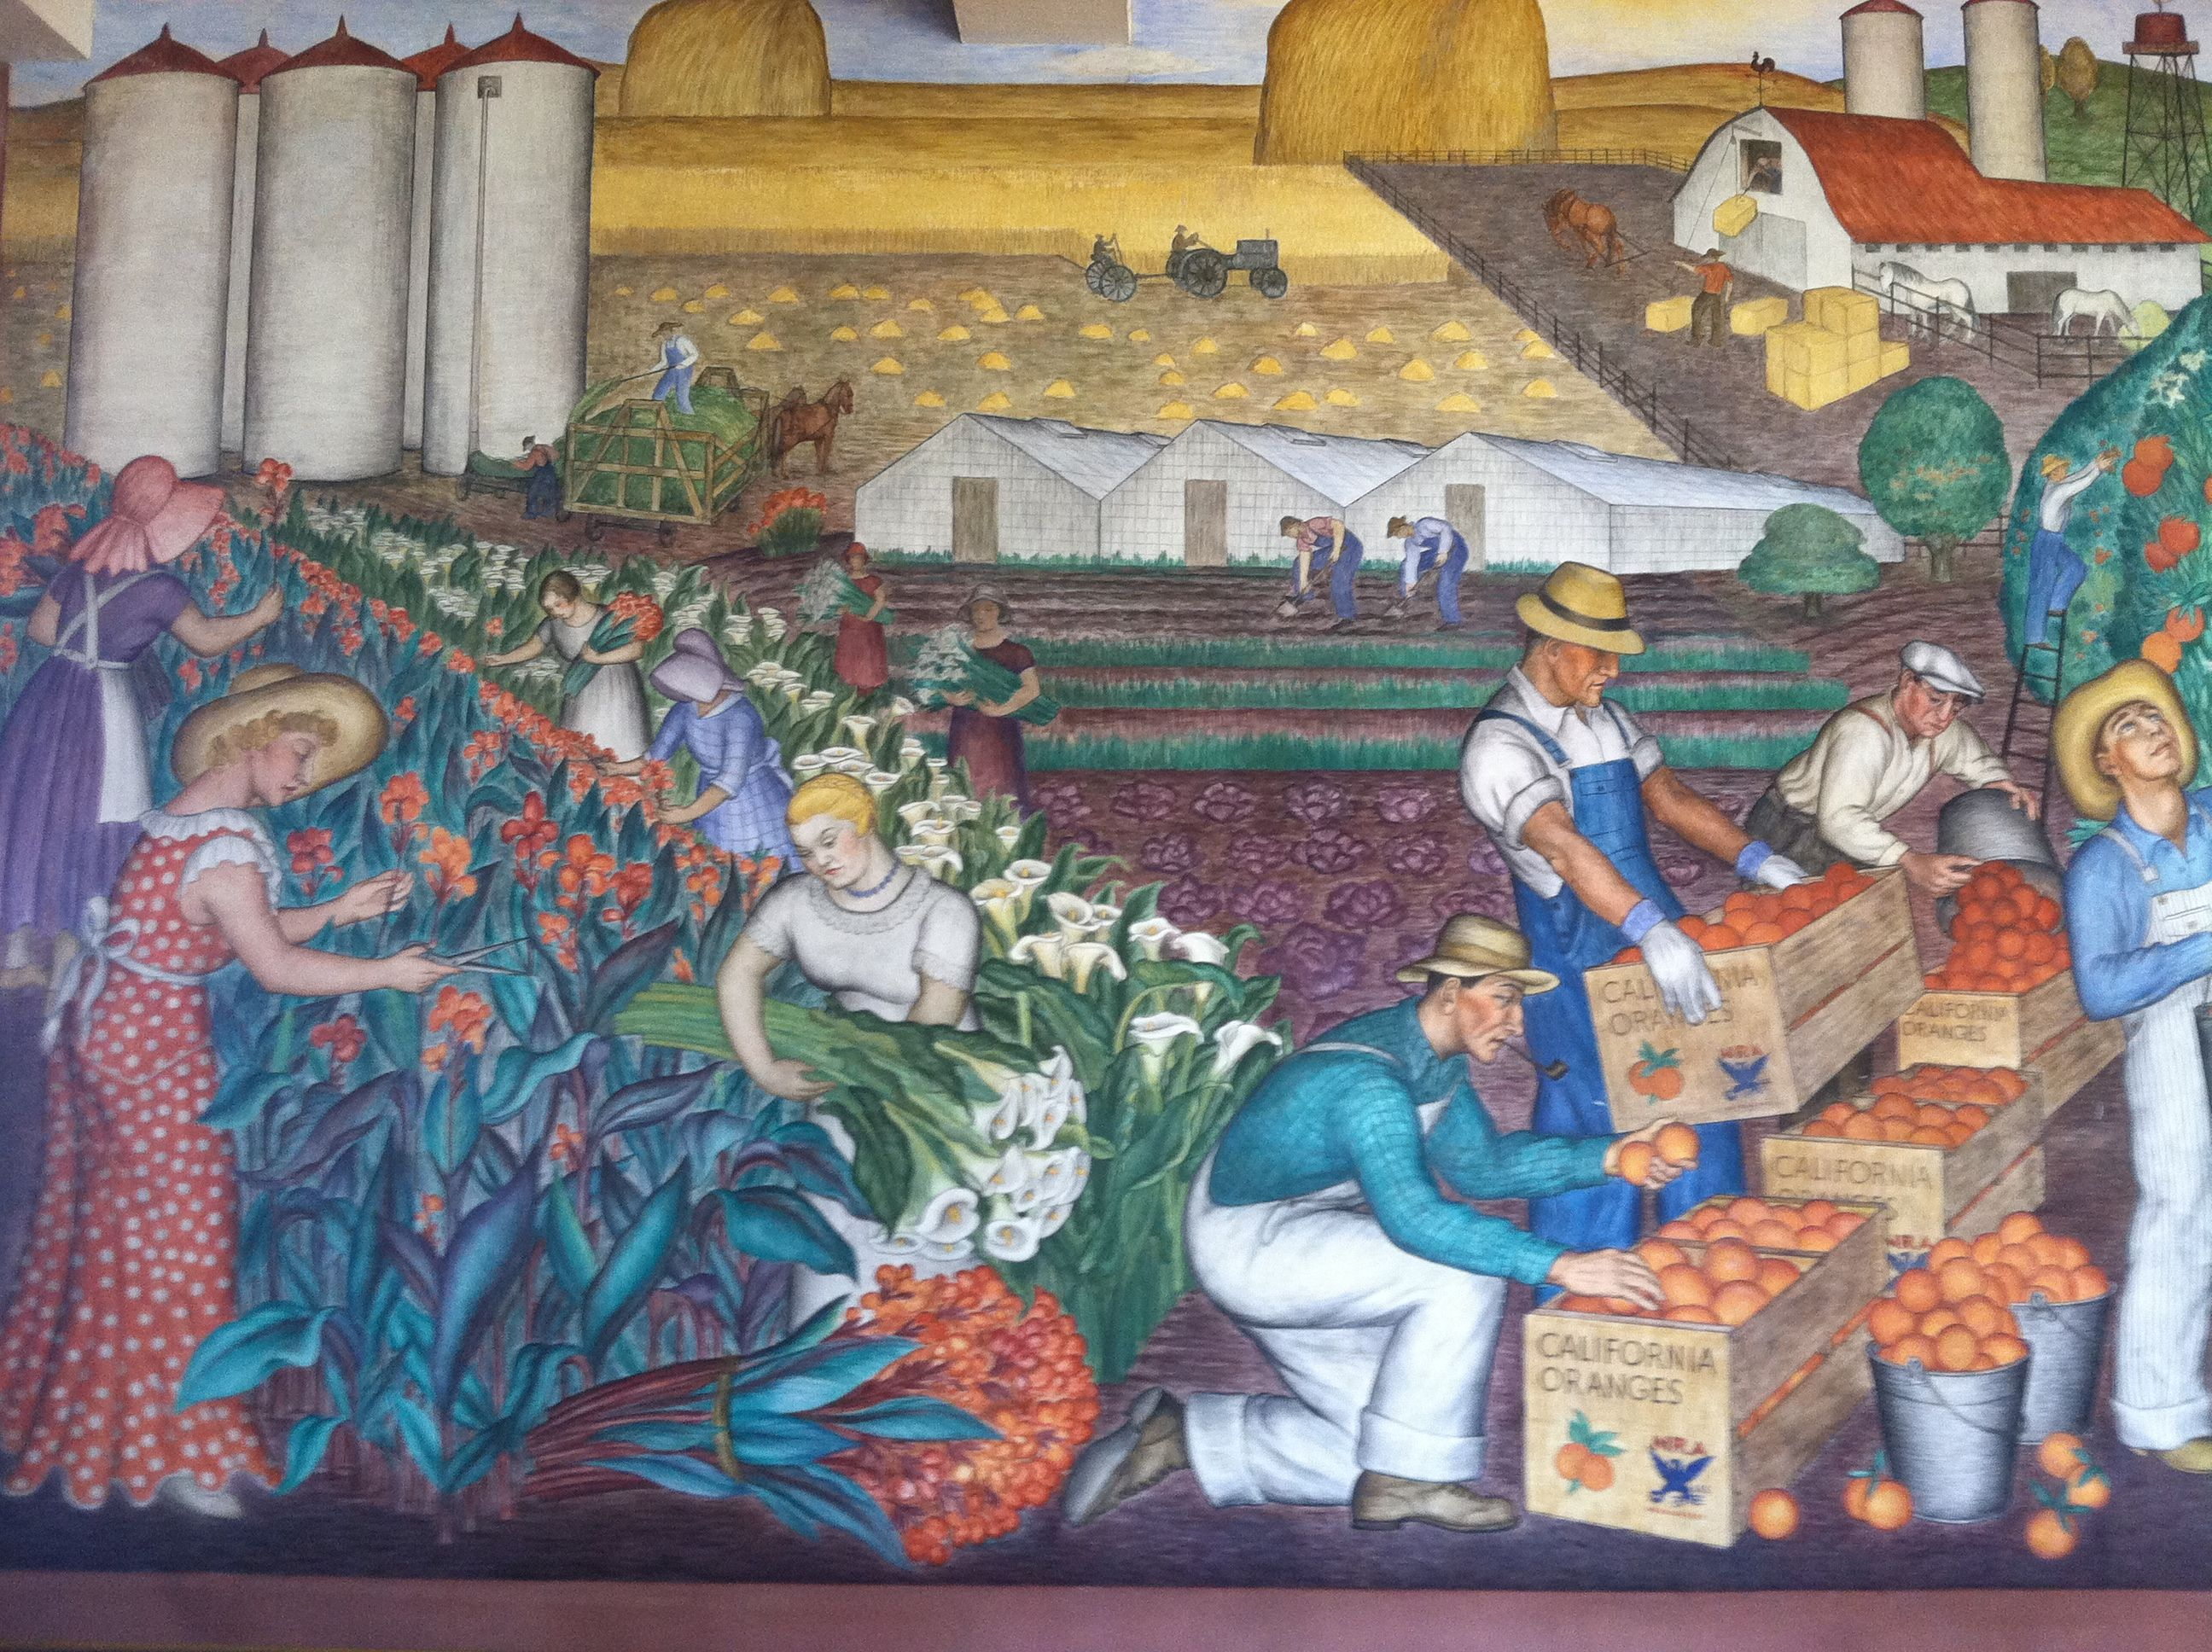 Coit tower wpa murals sf artwork pinterest for Coit tower mural